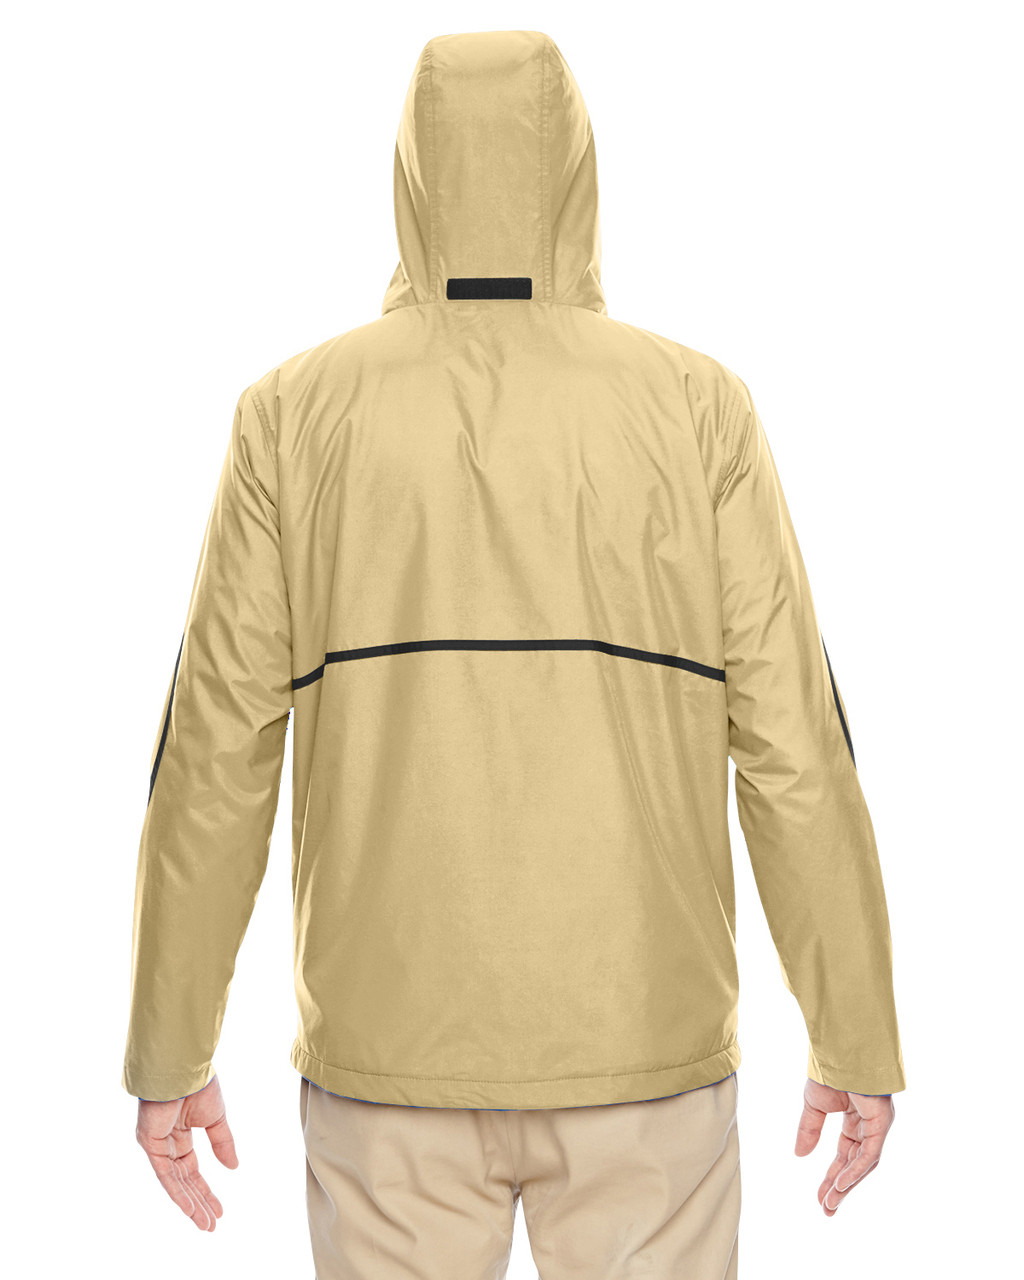 Sport Vegas Gold - Back, TT72 Team 365 Conquest Jacket with Fleece Lining | BlankClothing.ca